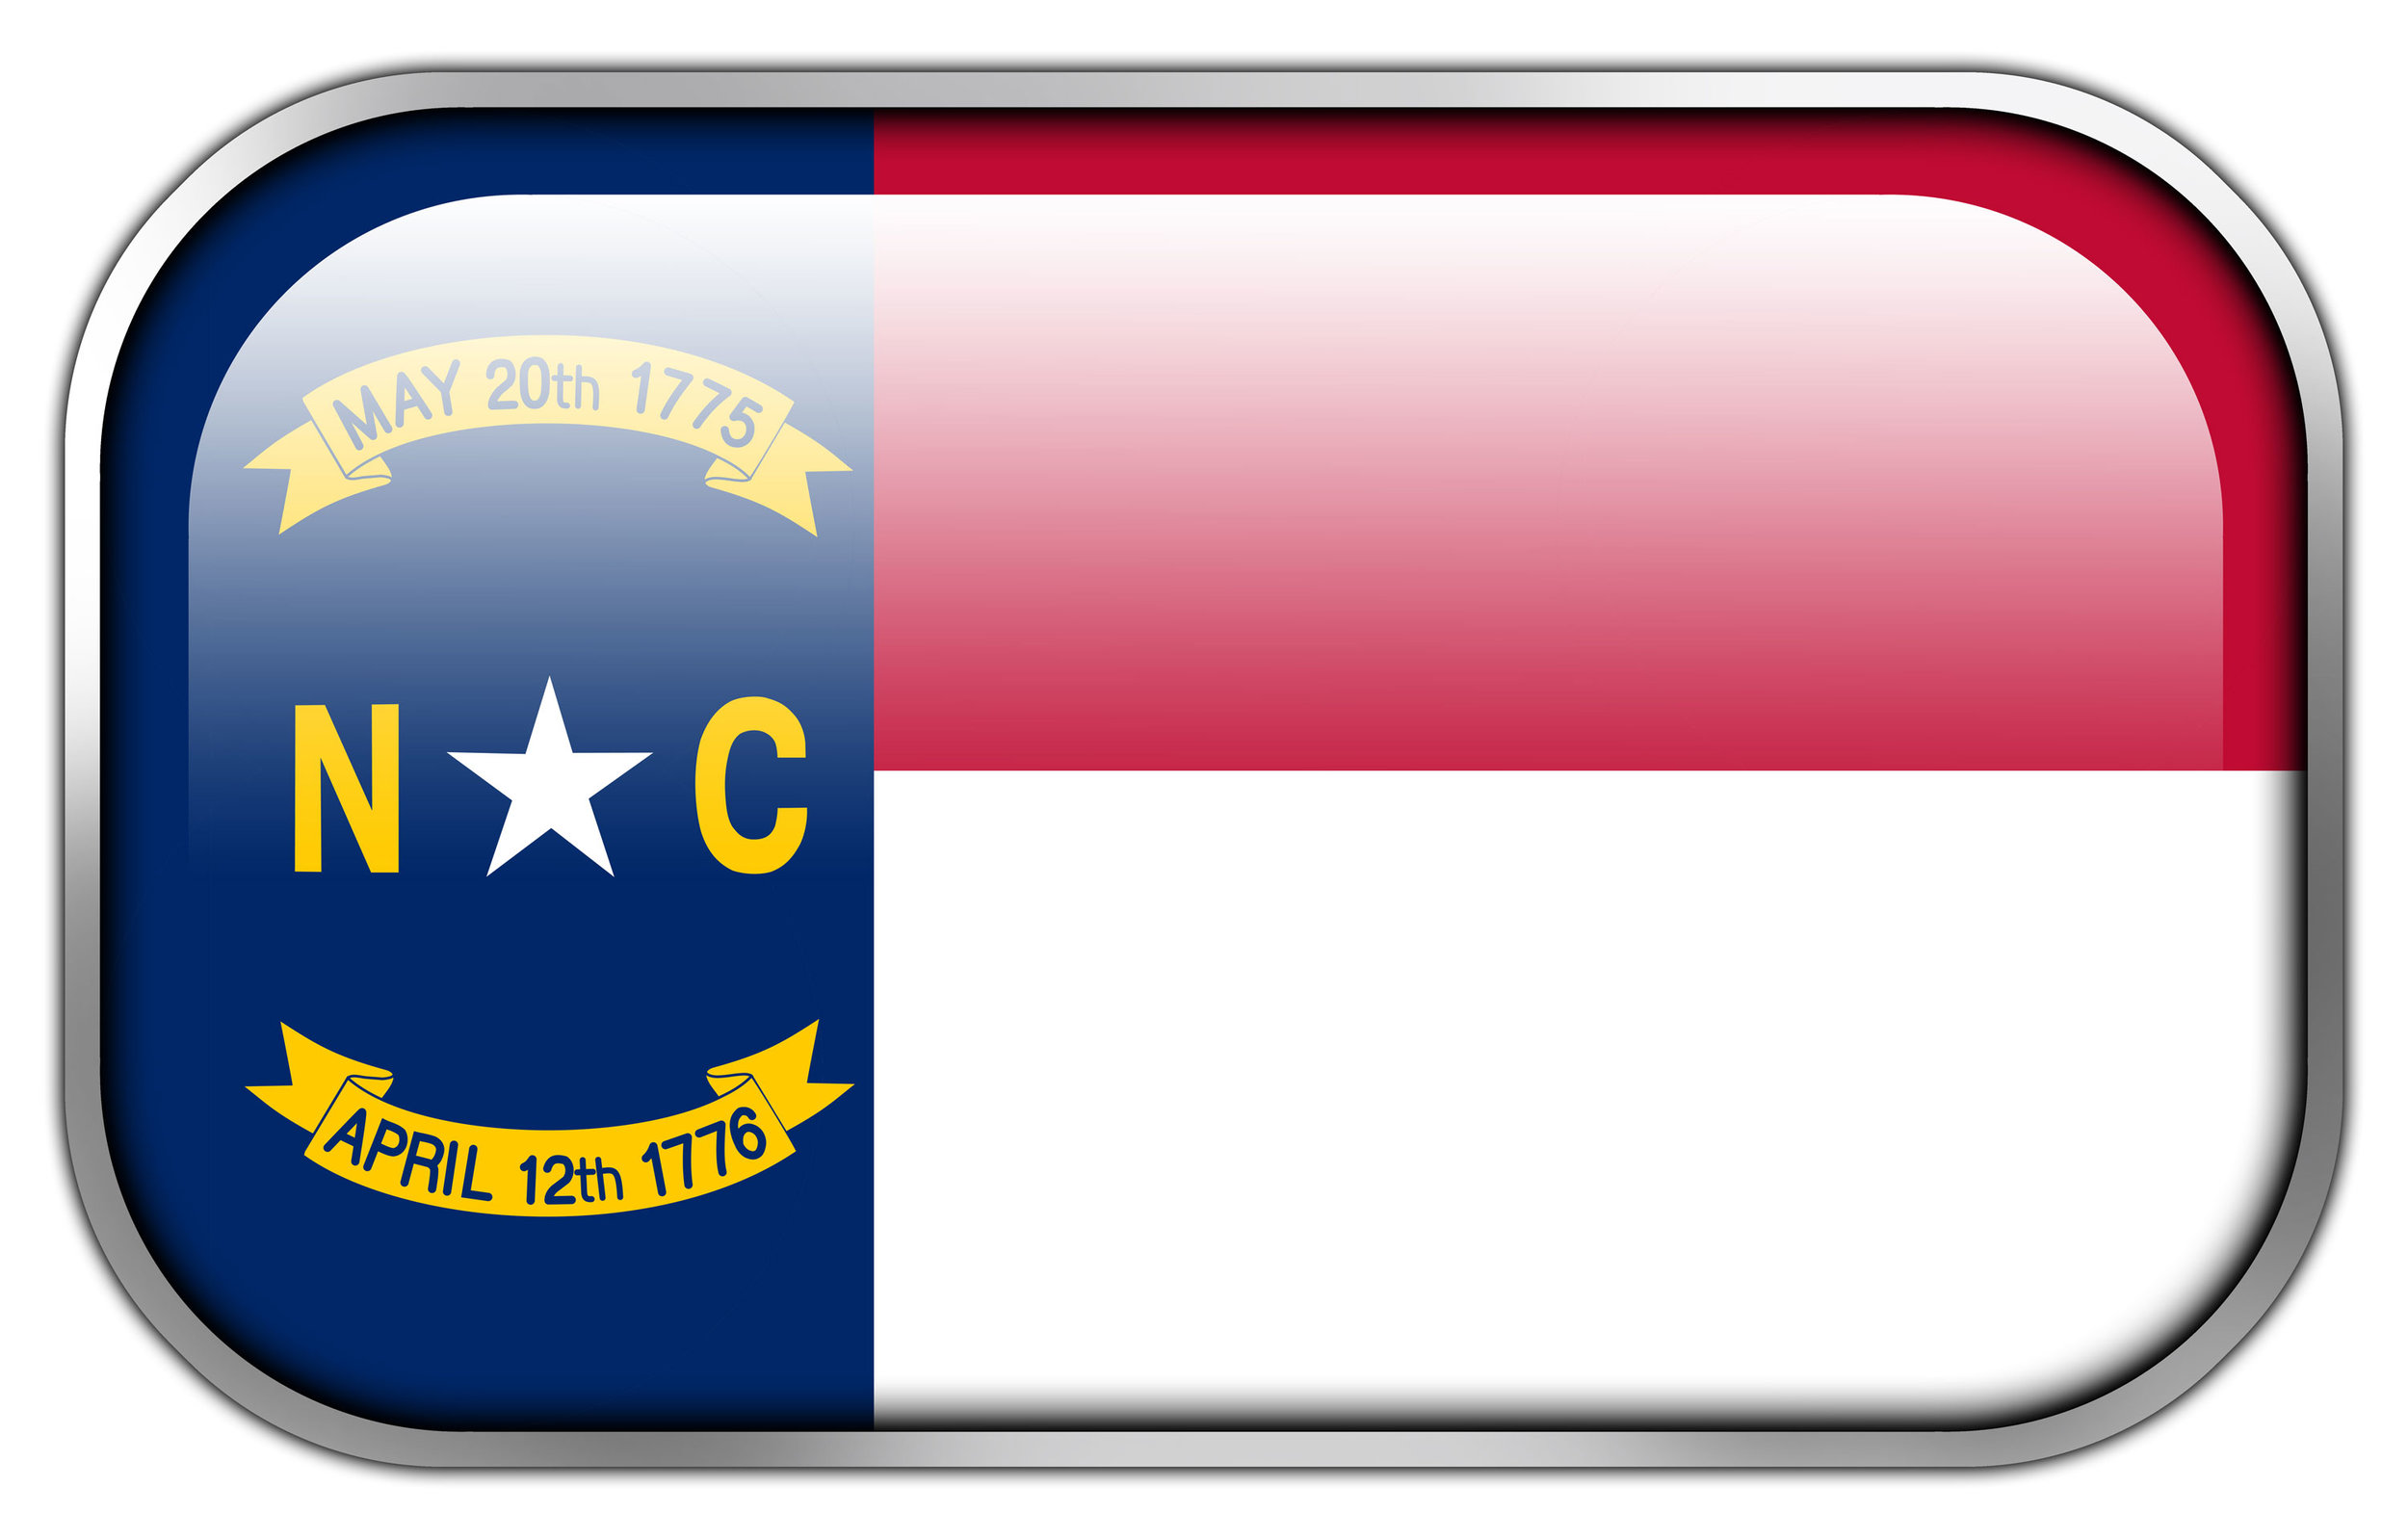 Class 1 Misdemeanor in North Carolina